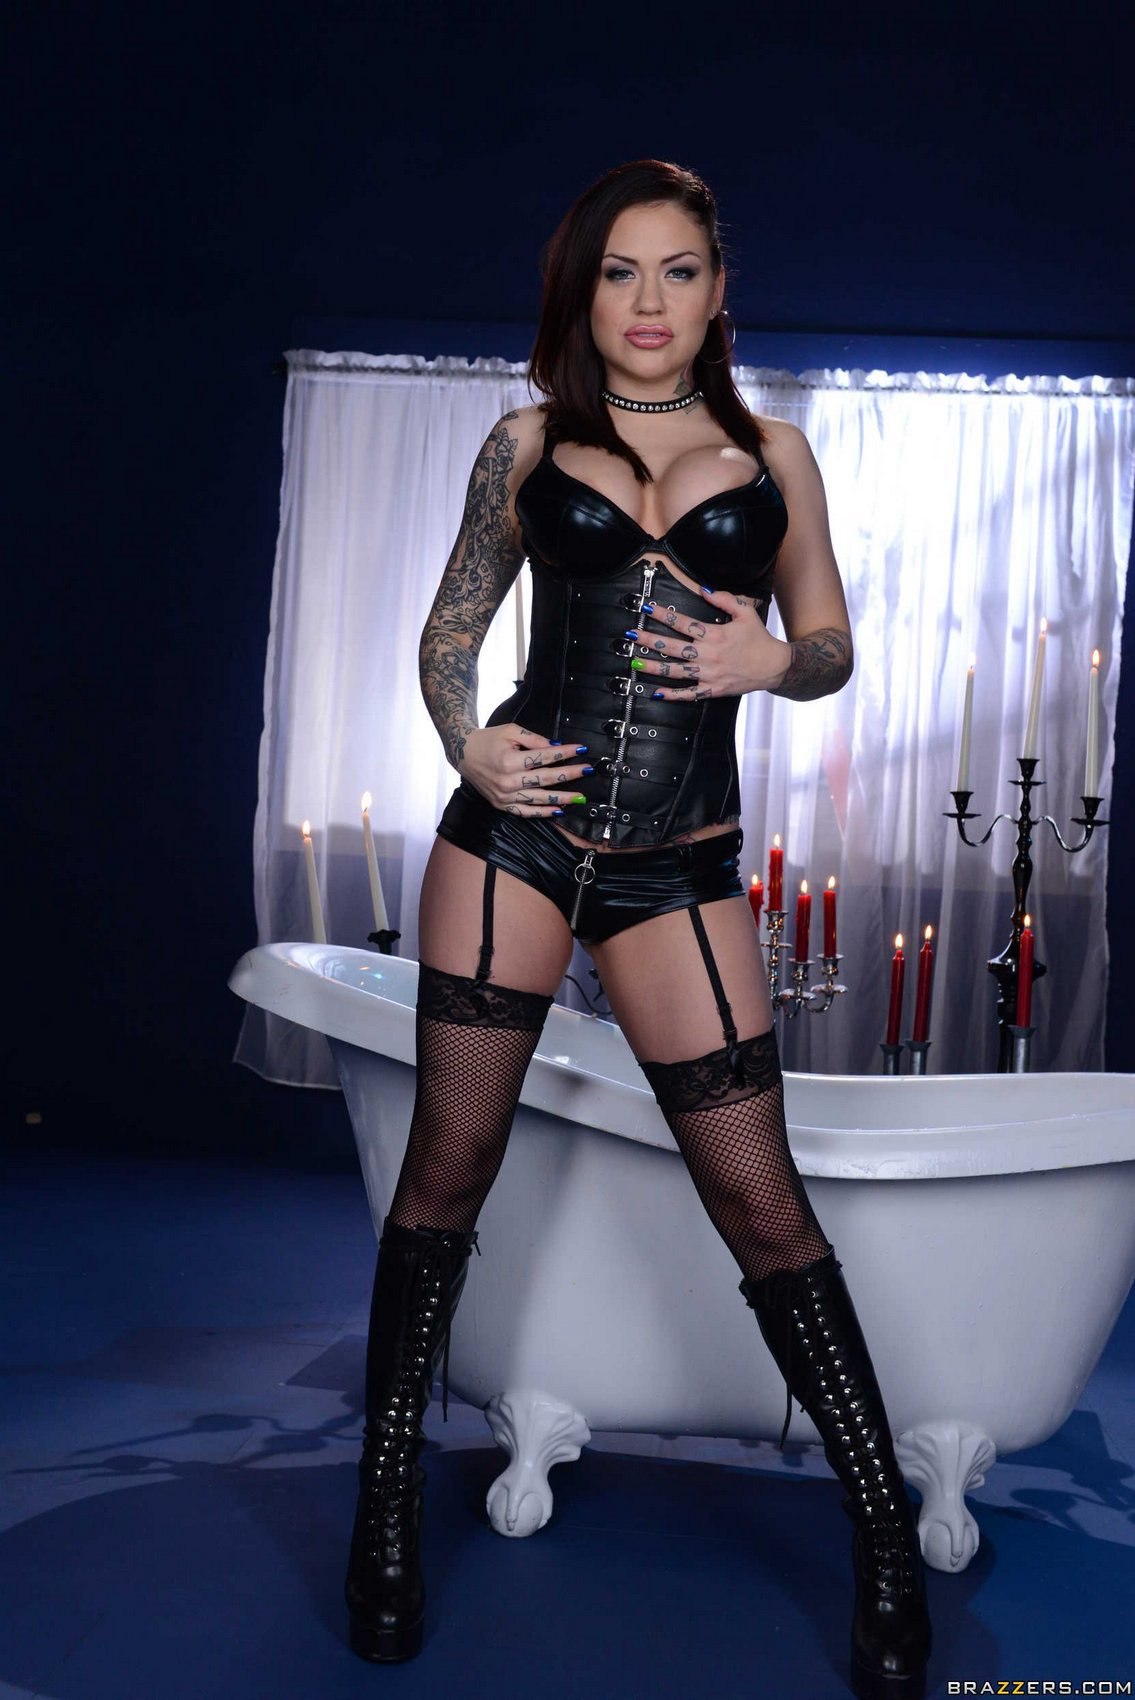 Mistress Karmen Karma In Corset And Stockings Posing In -2454